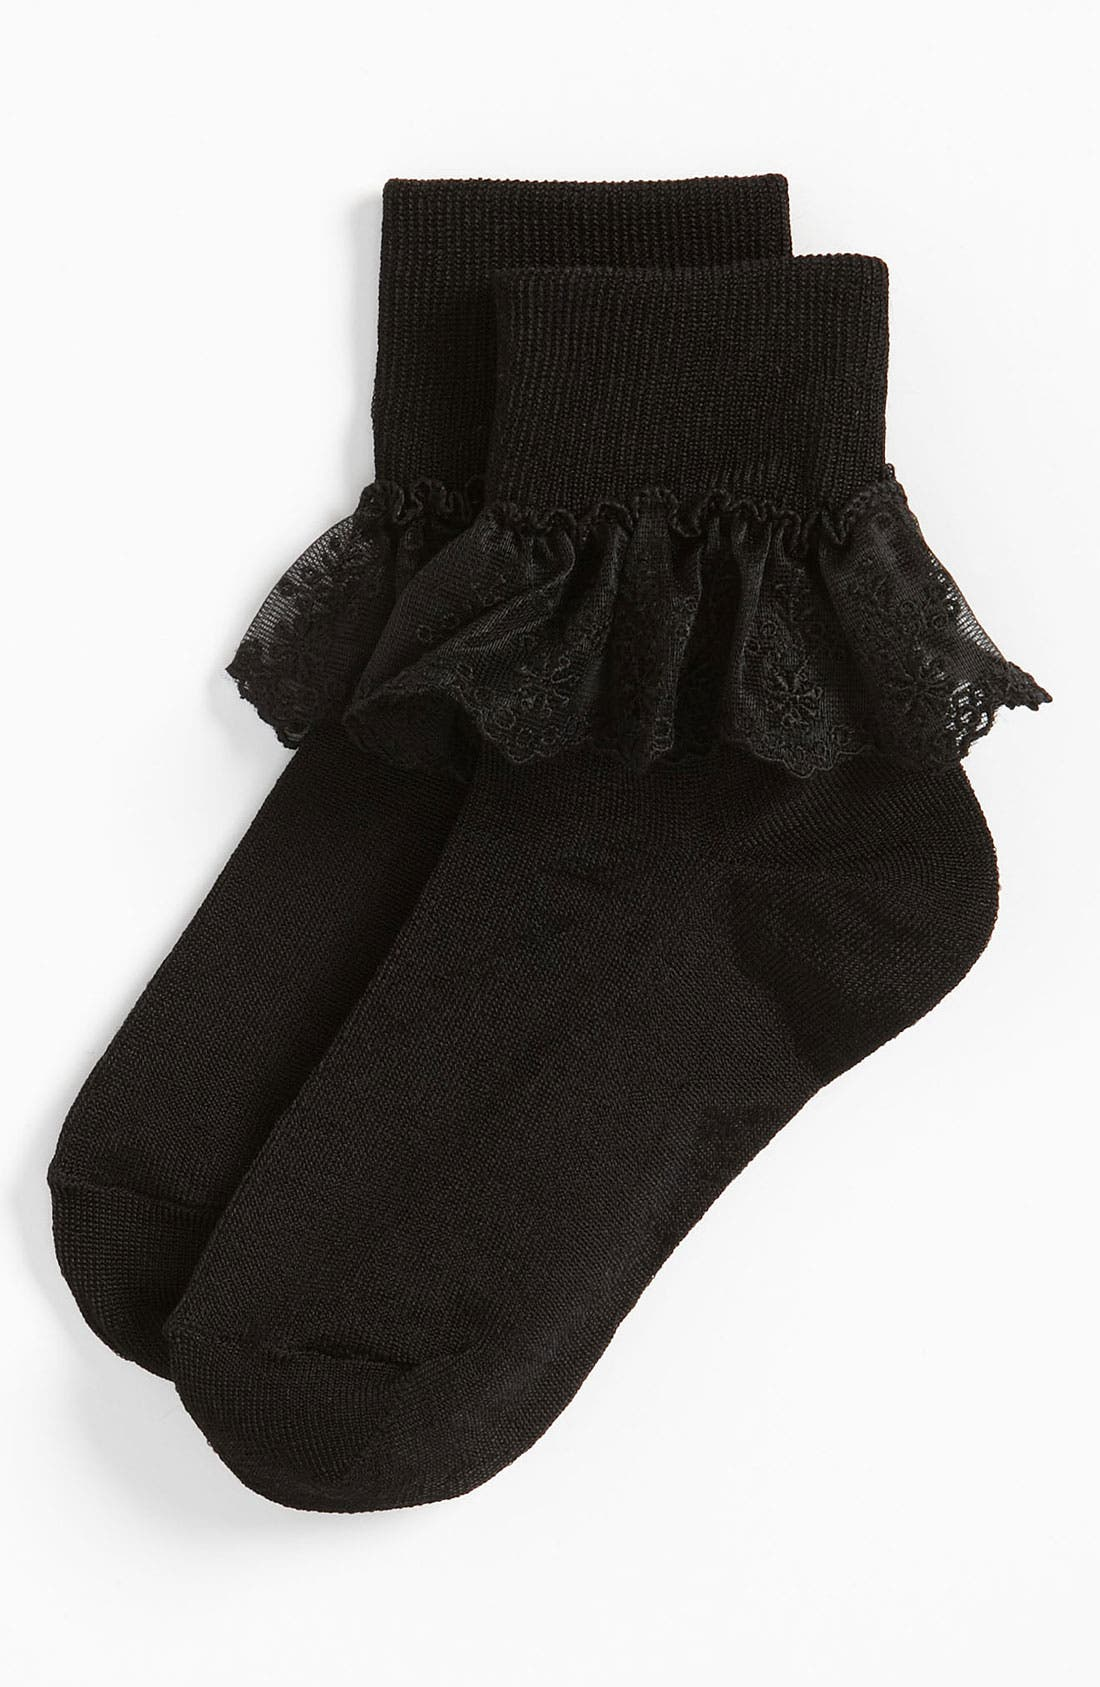 Main Image - Nordstrom 'Snow Queen' Socks (Toddler, Little Girls & Big Girls)